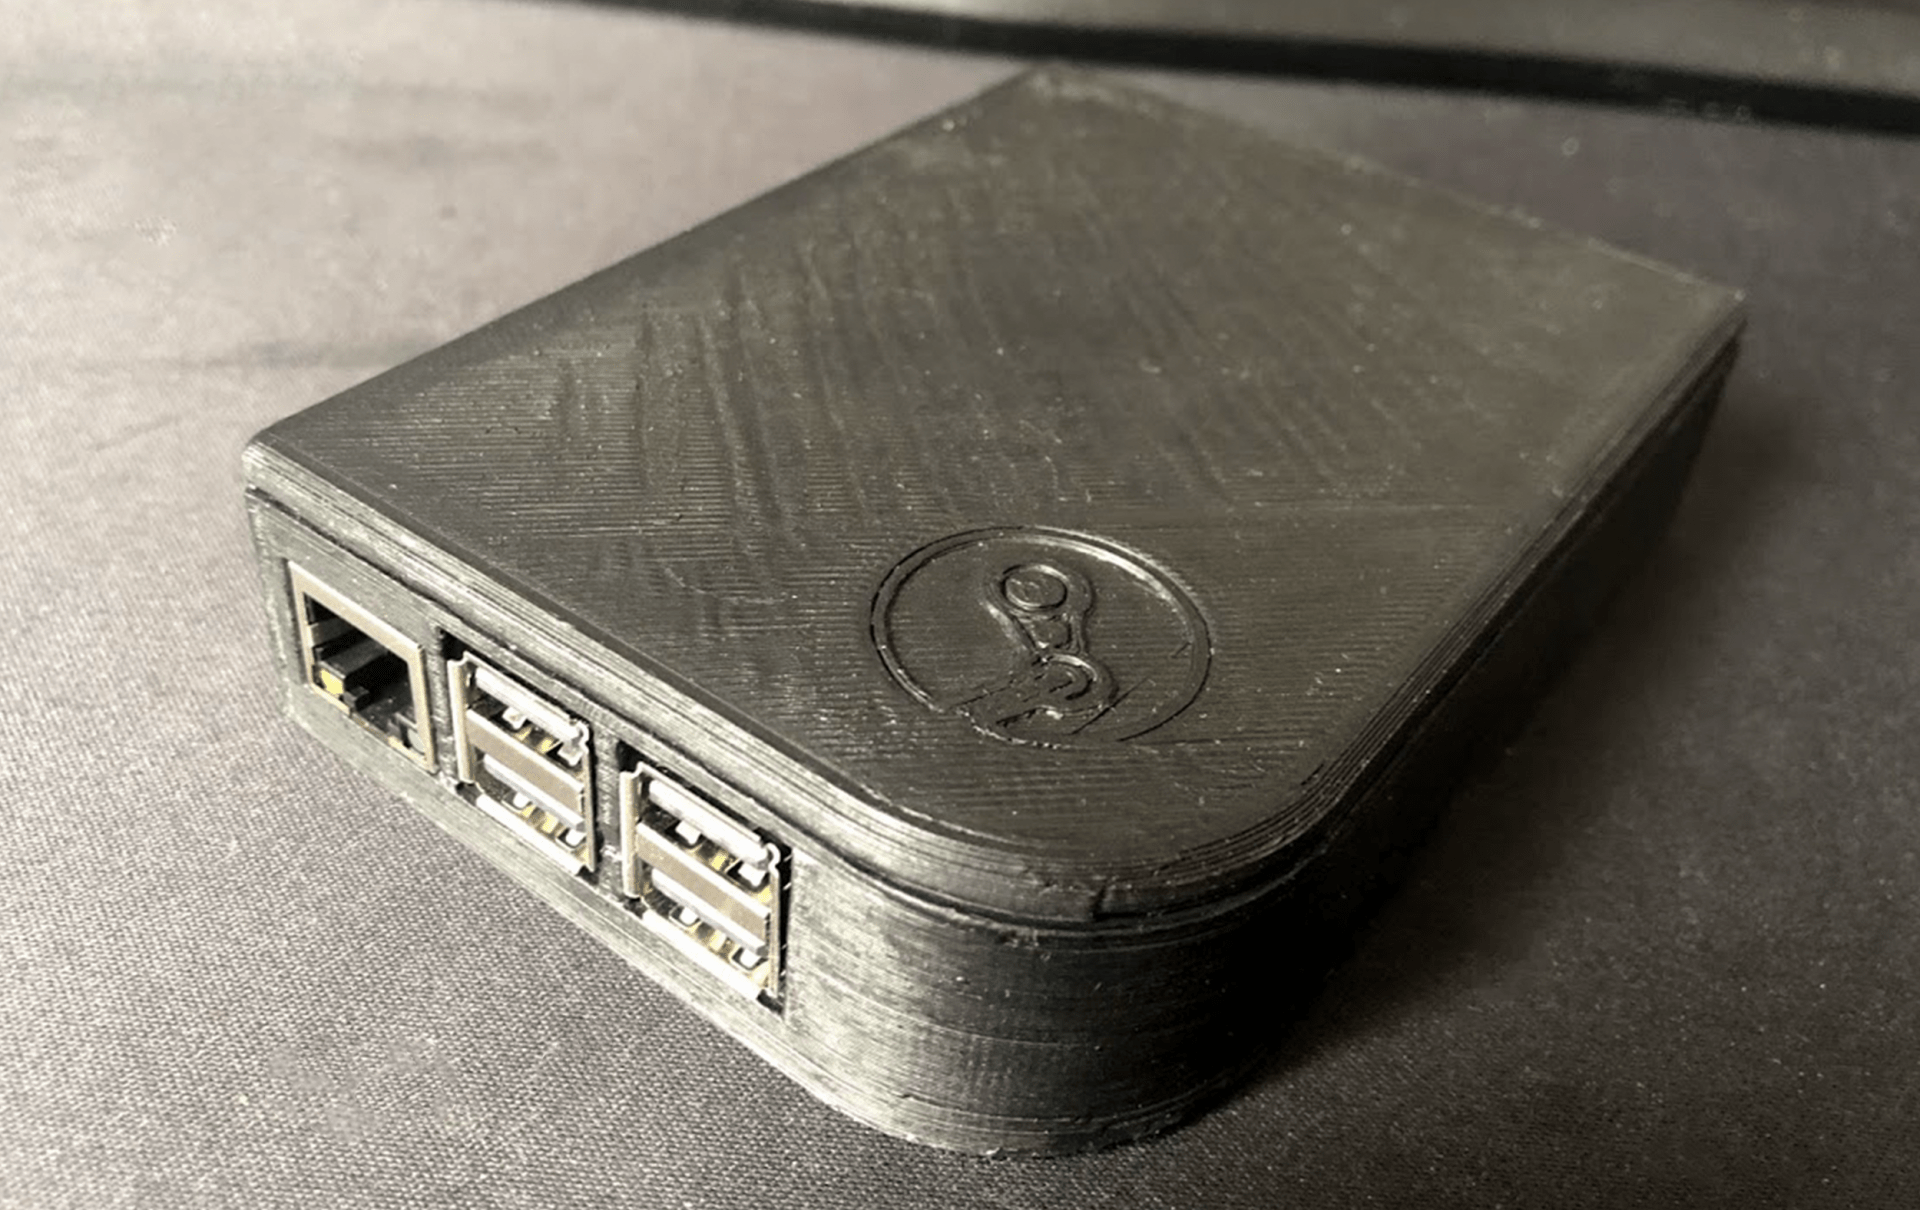 Couch co-op Made Easy: Raspberry Pi Steam Link